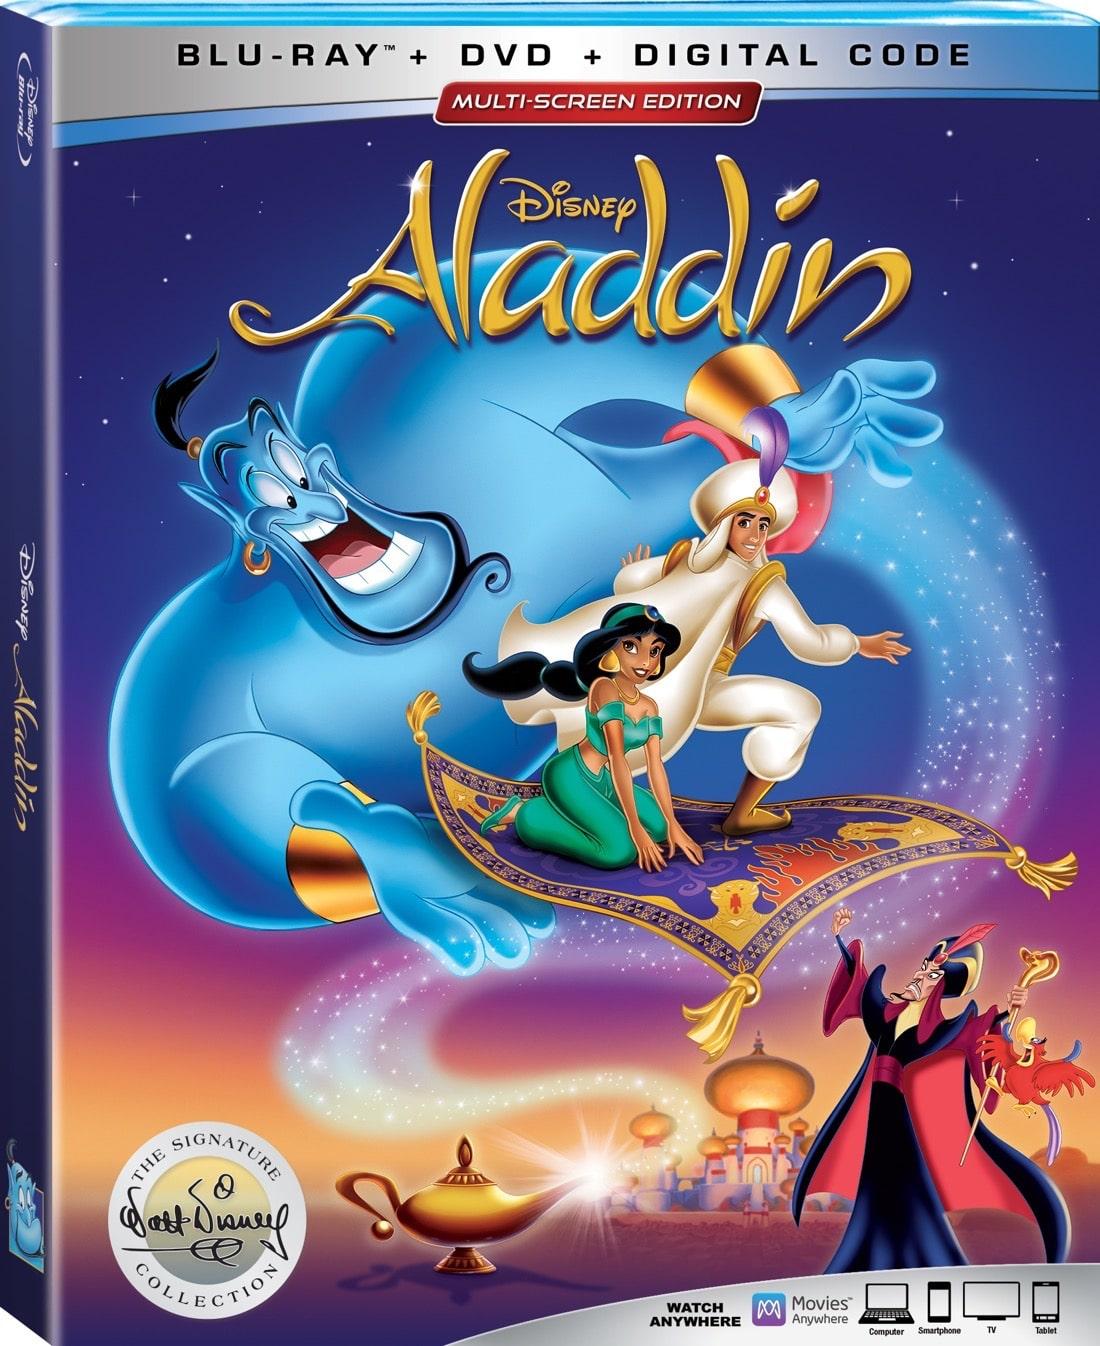 BD Aladdin Signature Collection